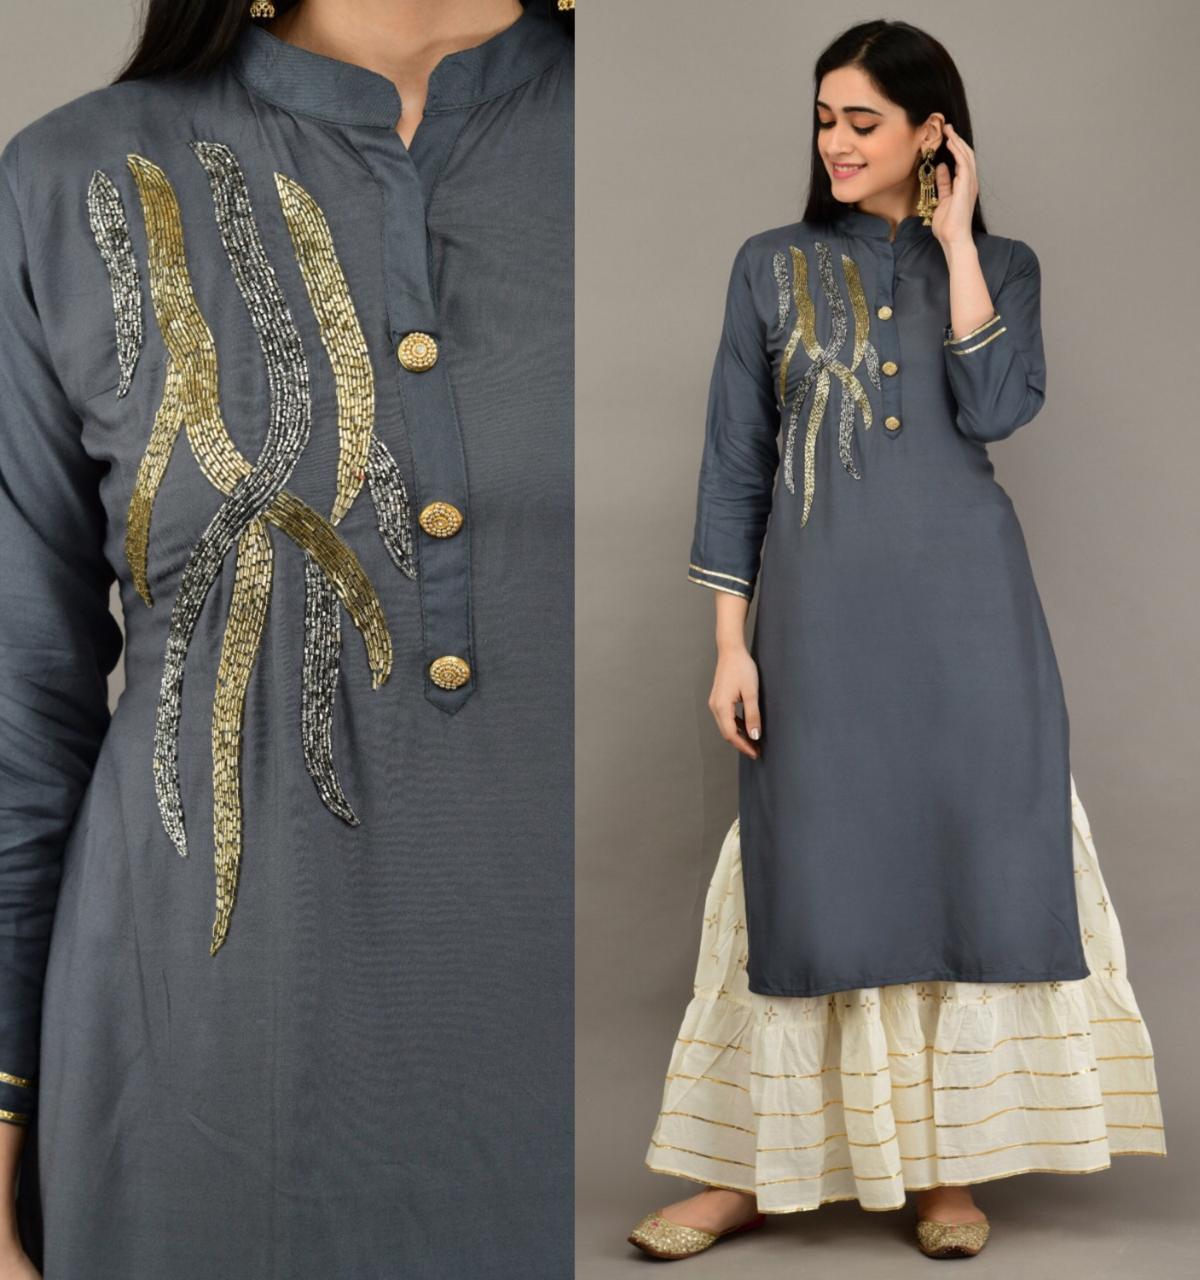 Astonishing Grey Color Beautiful Khatli Work Full Stitched Rayon Kurti Plazo Set For Function Wear